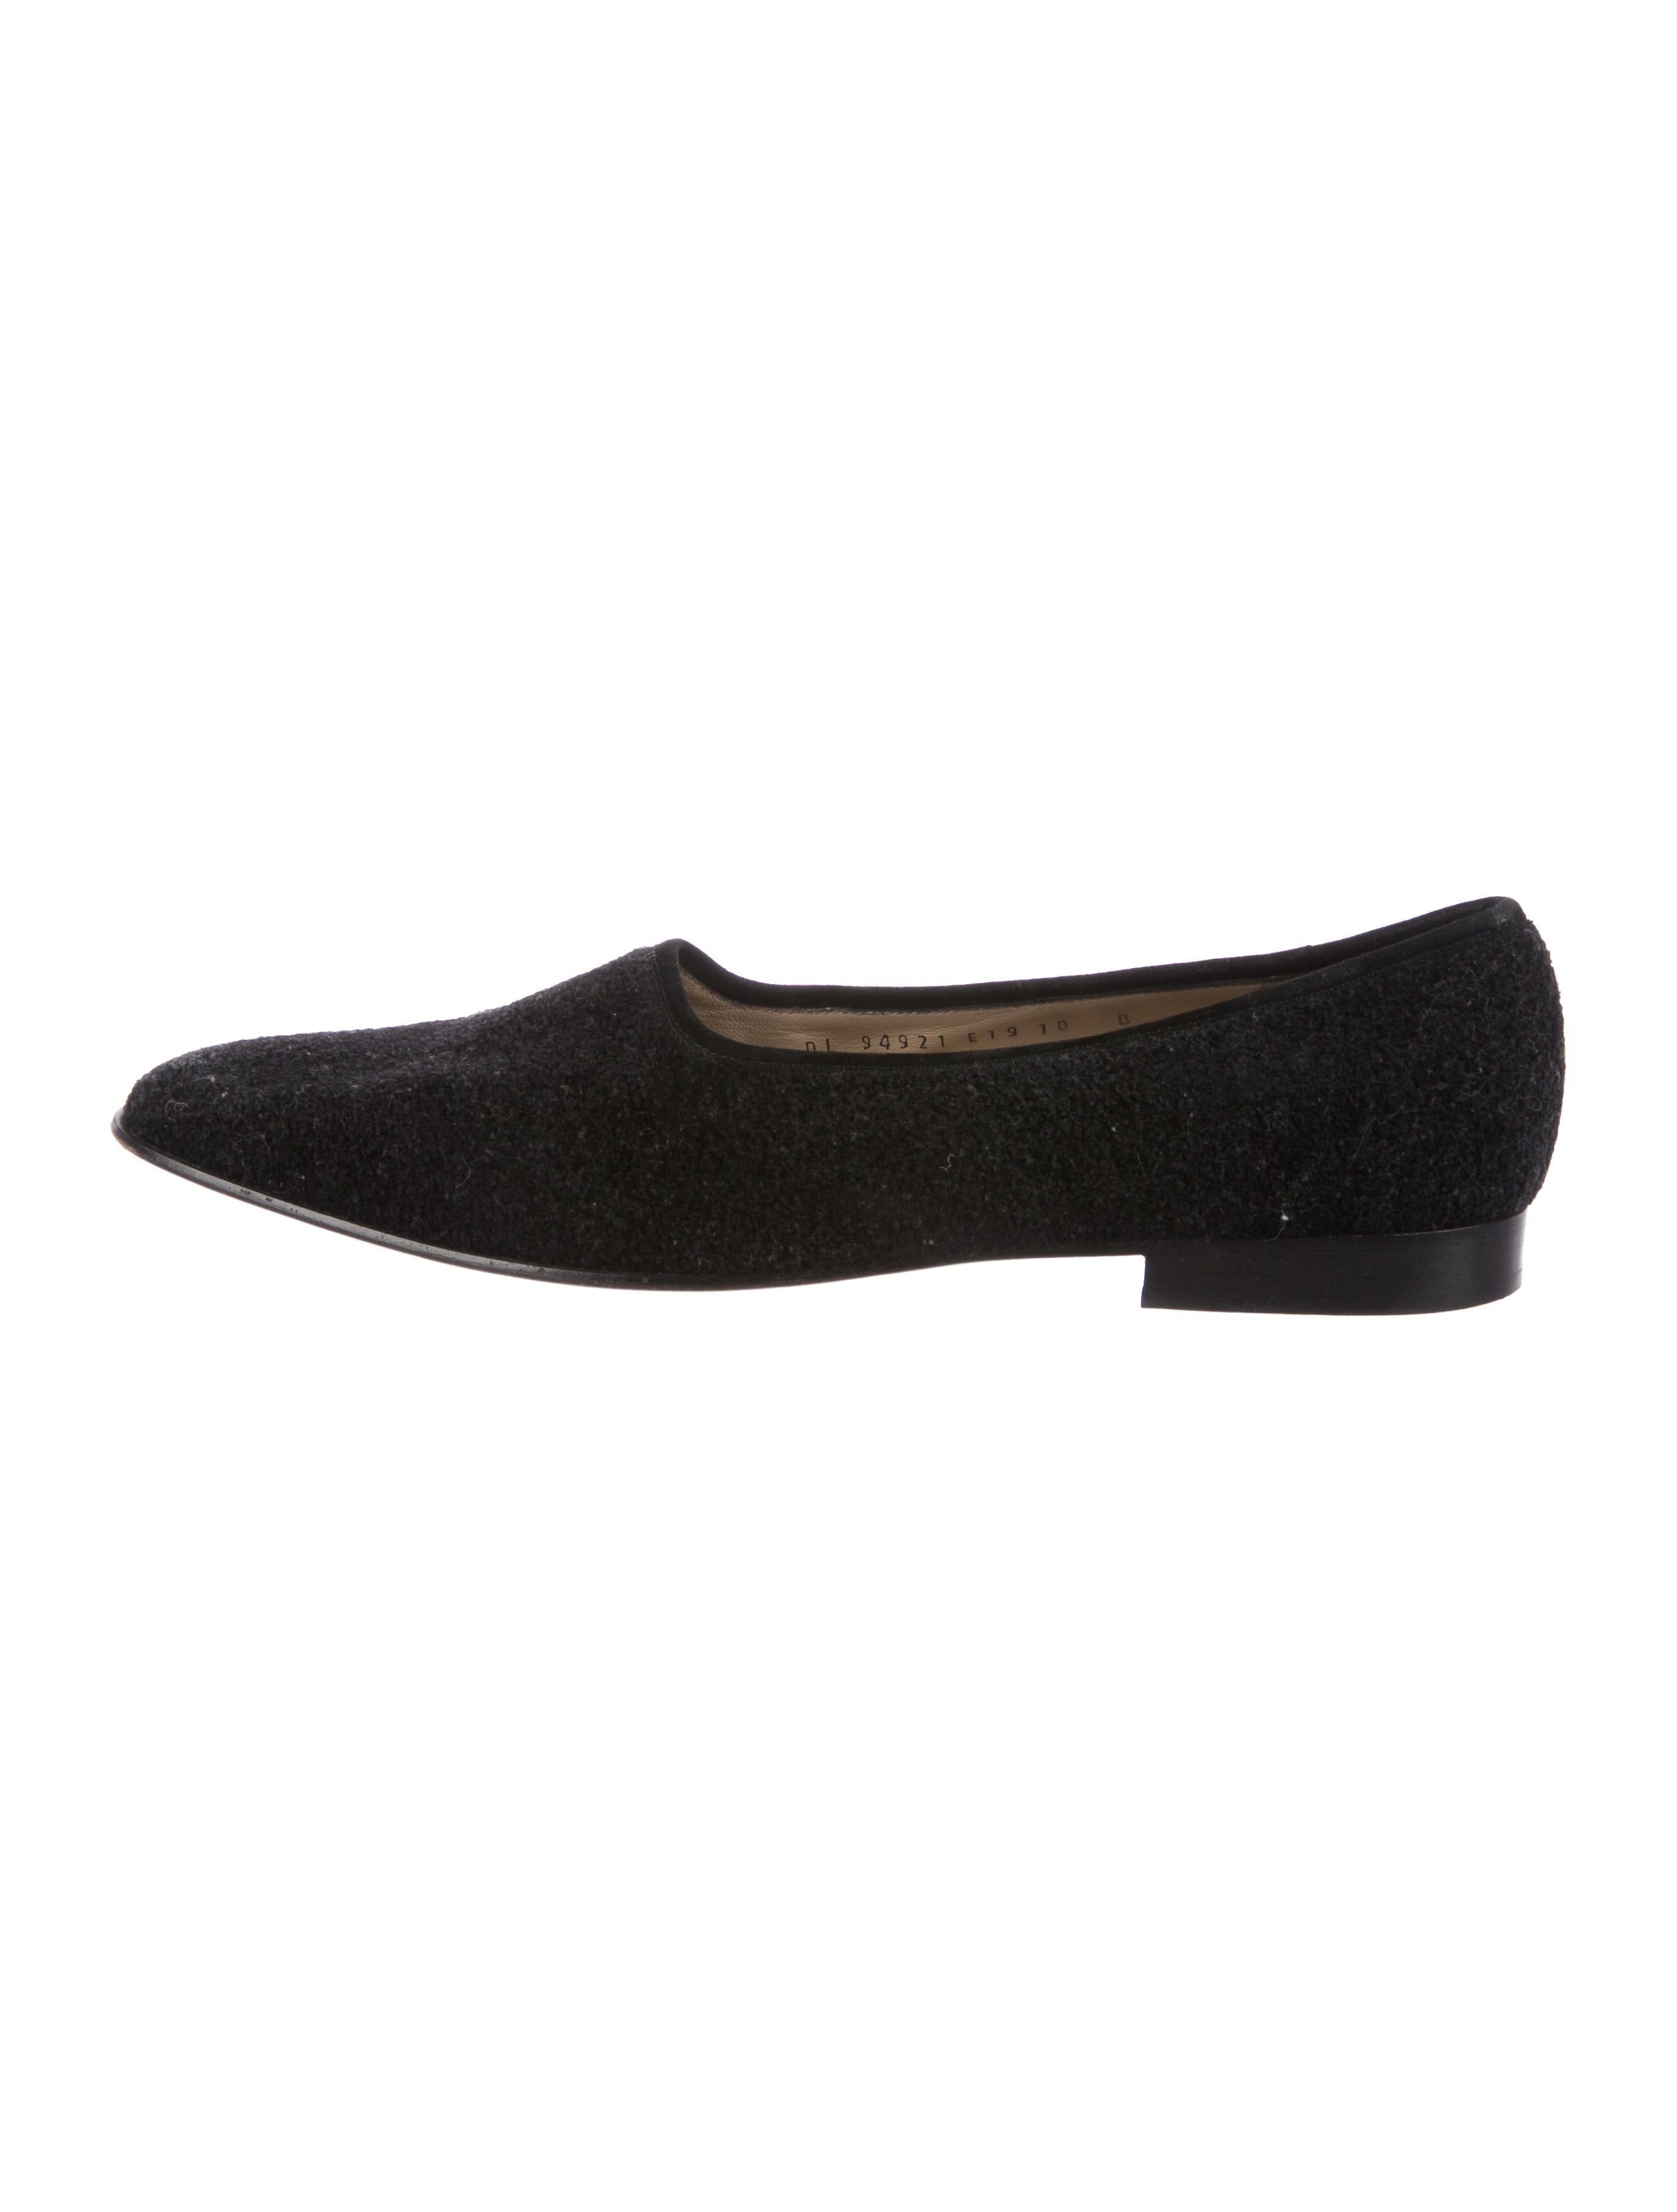 Salvatore Ferragamo Woven Round-Toe Loafers clearance sale online new arrival online rKoeo6W2I